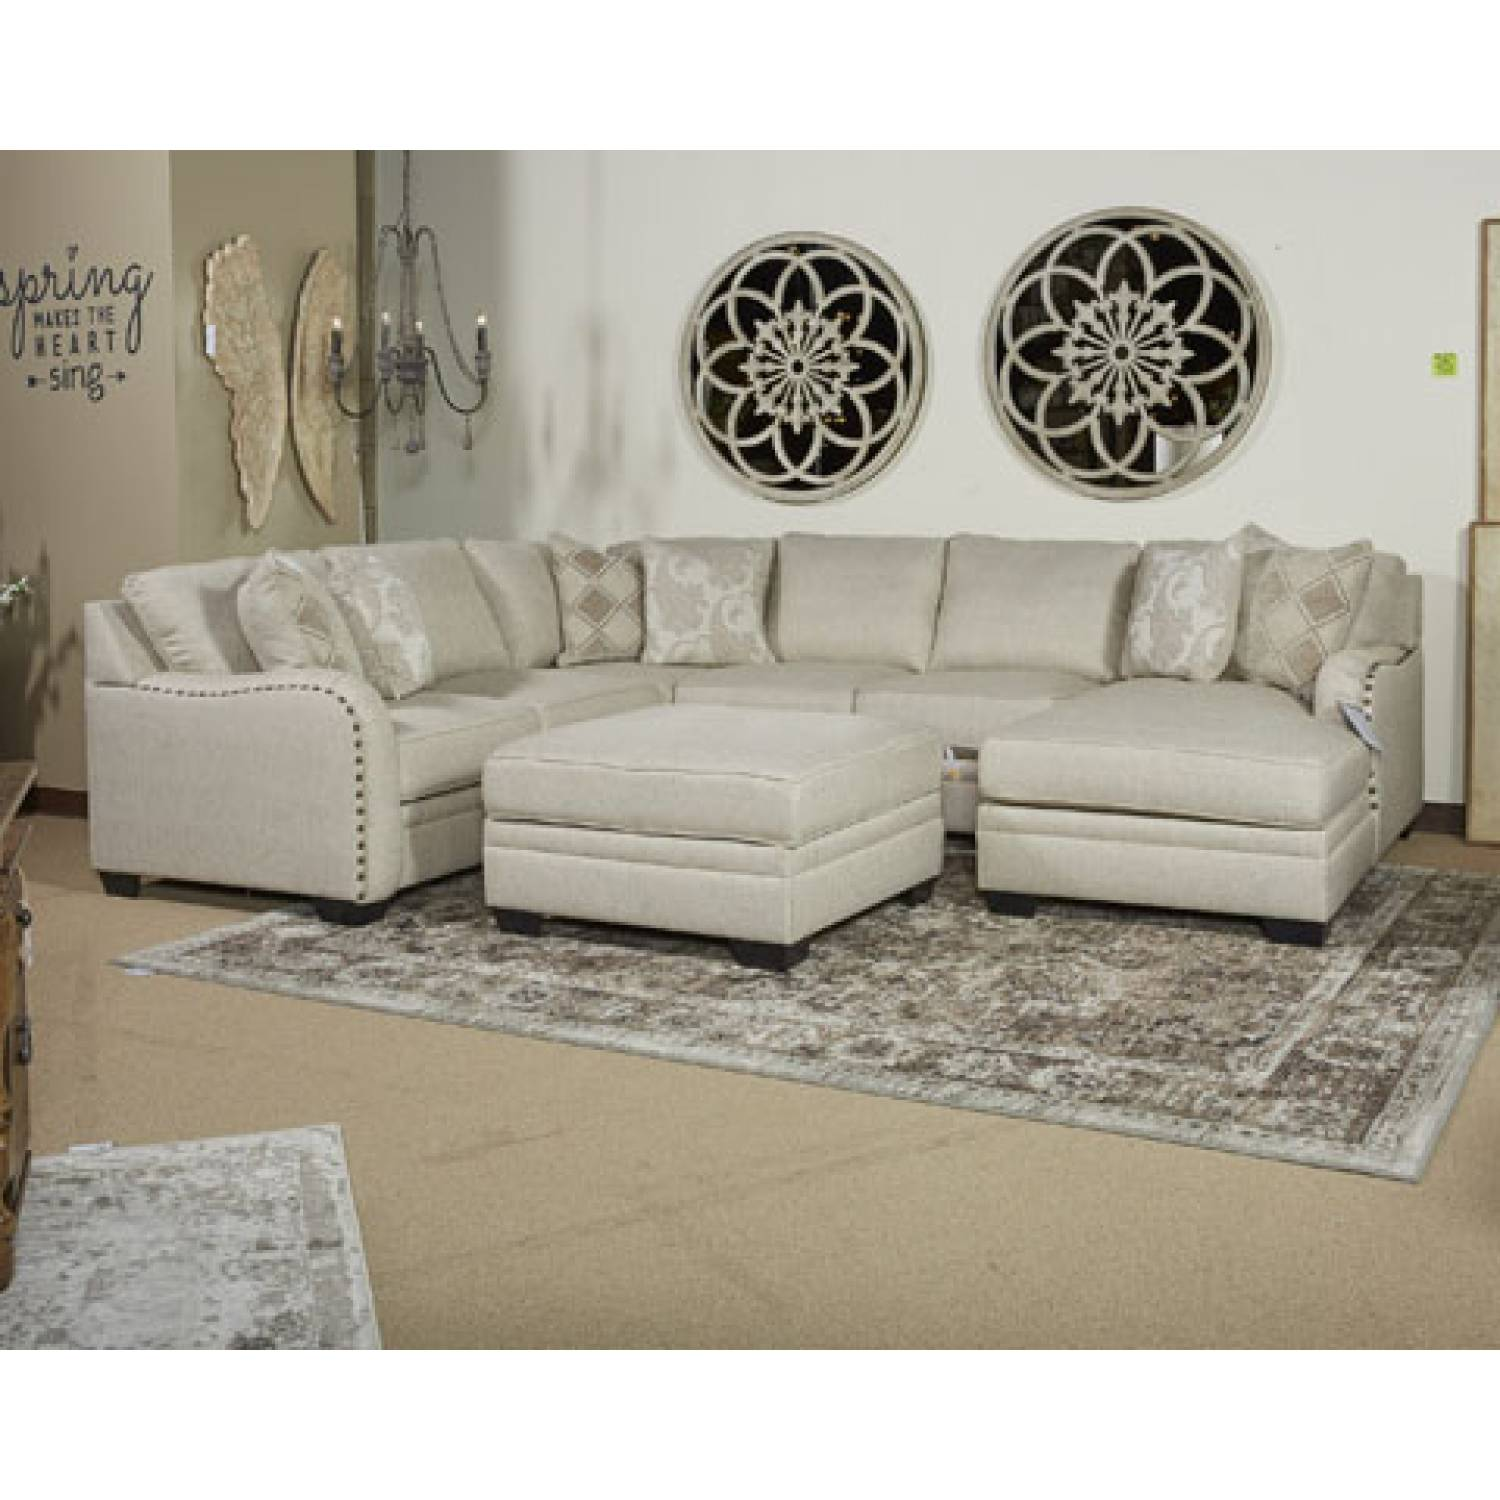 Ashley Furniture San Diego 52501 Luxora Ottoman With Storage